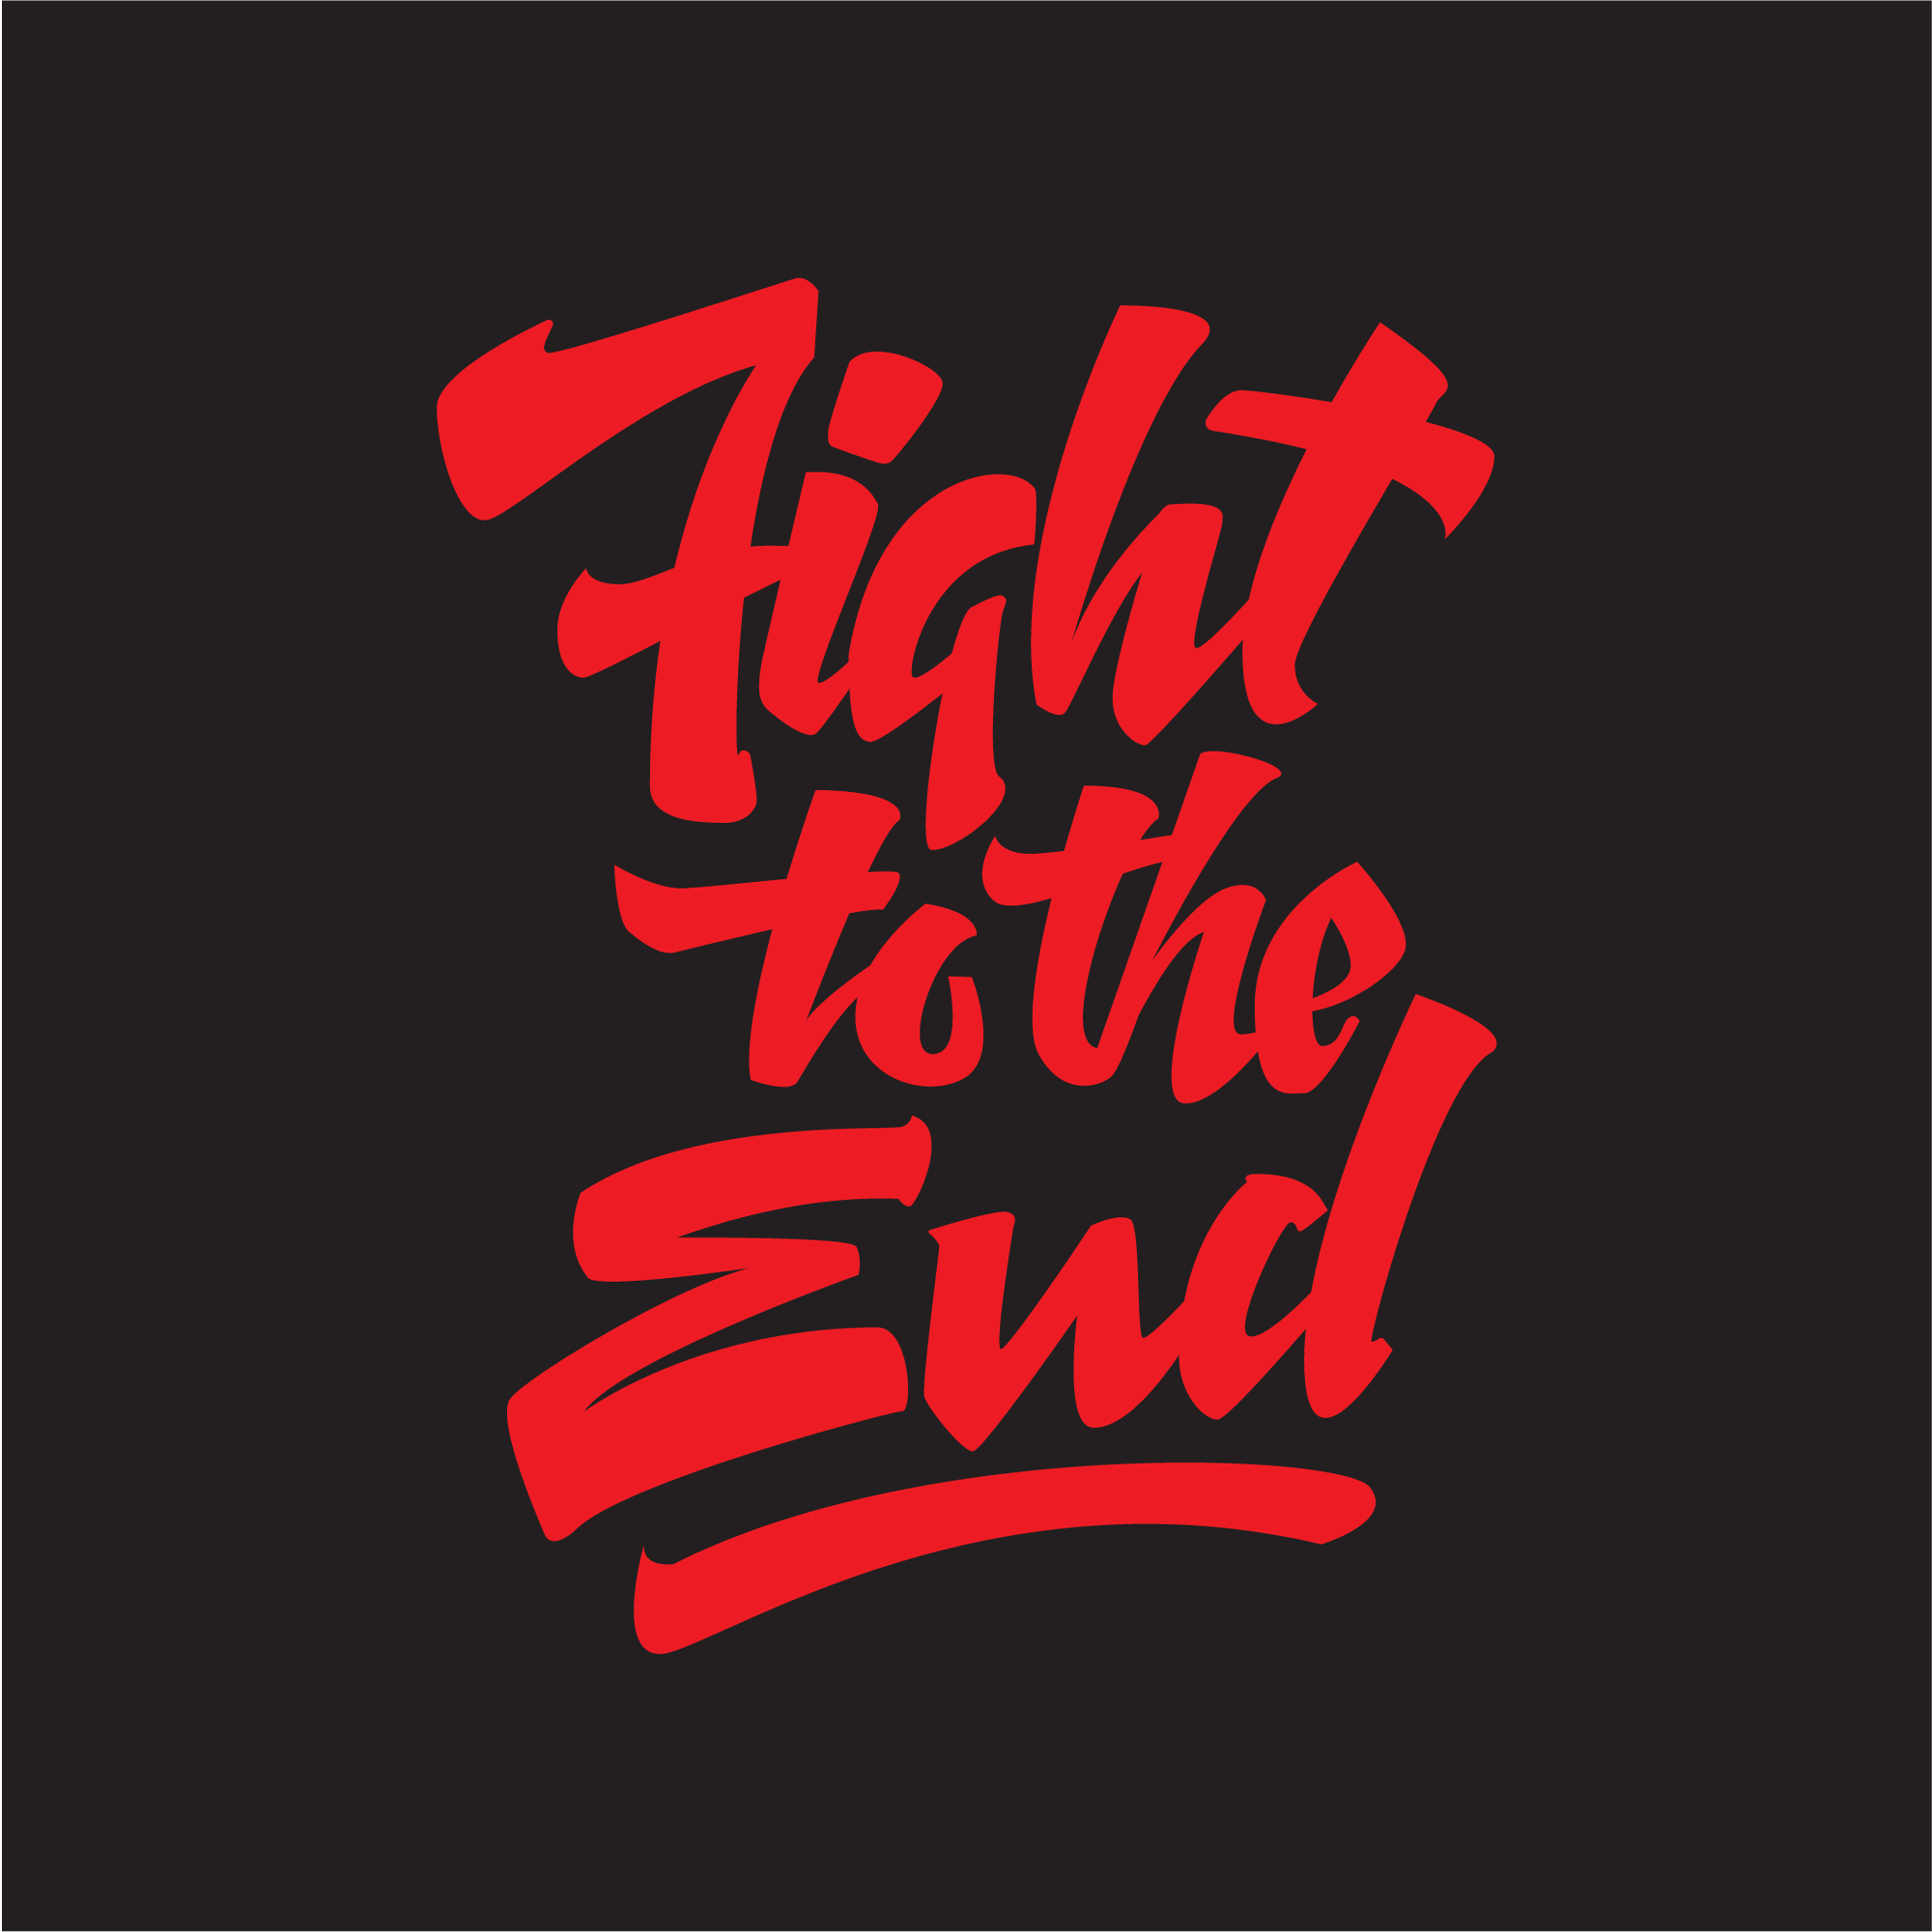 319 fight to the end